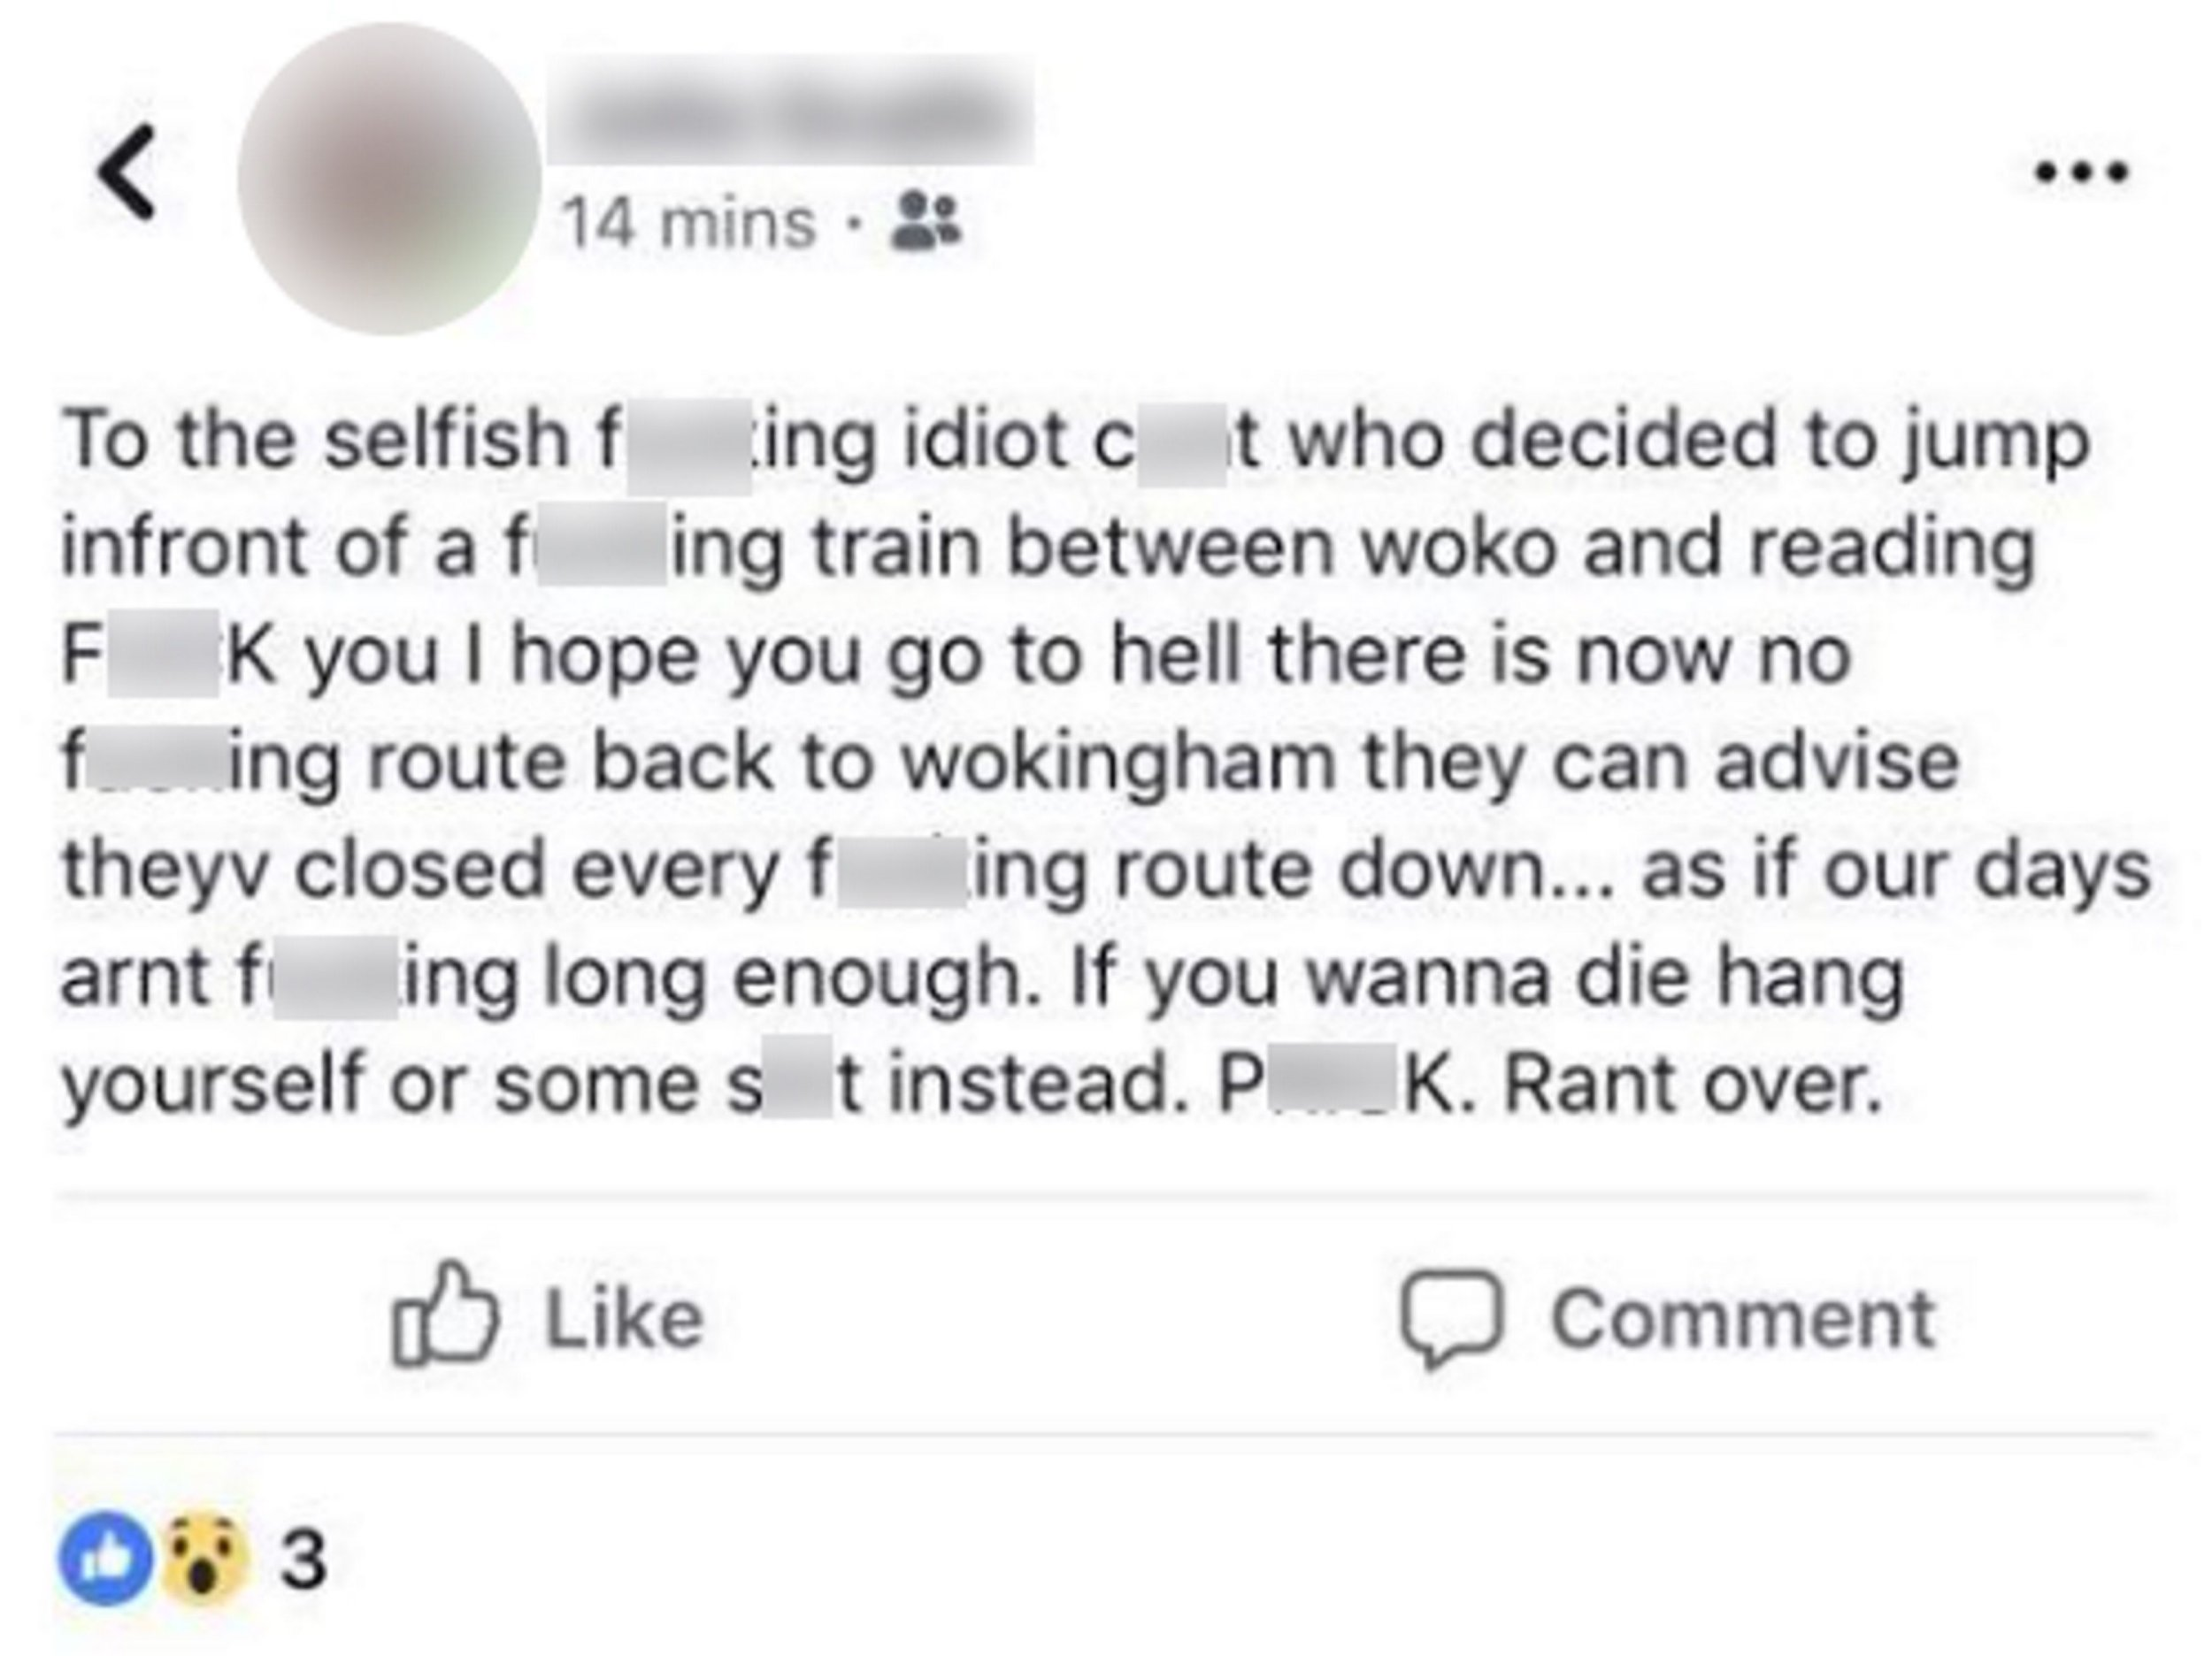 PIC FROM Kennedy News and Media (PICTURED: COMMUTER'S ONLINE RANT AFTER TRAIN CANCELLATIONS AS RESULT OF BOY'S DEATH) A retired train driver whose vehicle killed a suicidal mother carrying her baby in the 70s has slammed a passenger's 'vile' rant over being late due to a boy of 15 being killed by a train. Dad-of-two Martin Gilbert, 64, was a second-man on the Continental Express in 1975 when the train driver hit a young mum and her seven-week-old daughter killing them instantly. Now, more than 40 years later, Martin still suffers terrible nightmares and flashbacks of the young mum, Nellie Ross, 25, stepping out in front of him. SEE KENNEDY NEWS COPY - 0161 697 4266